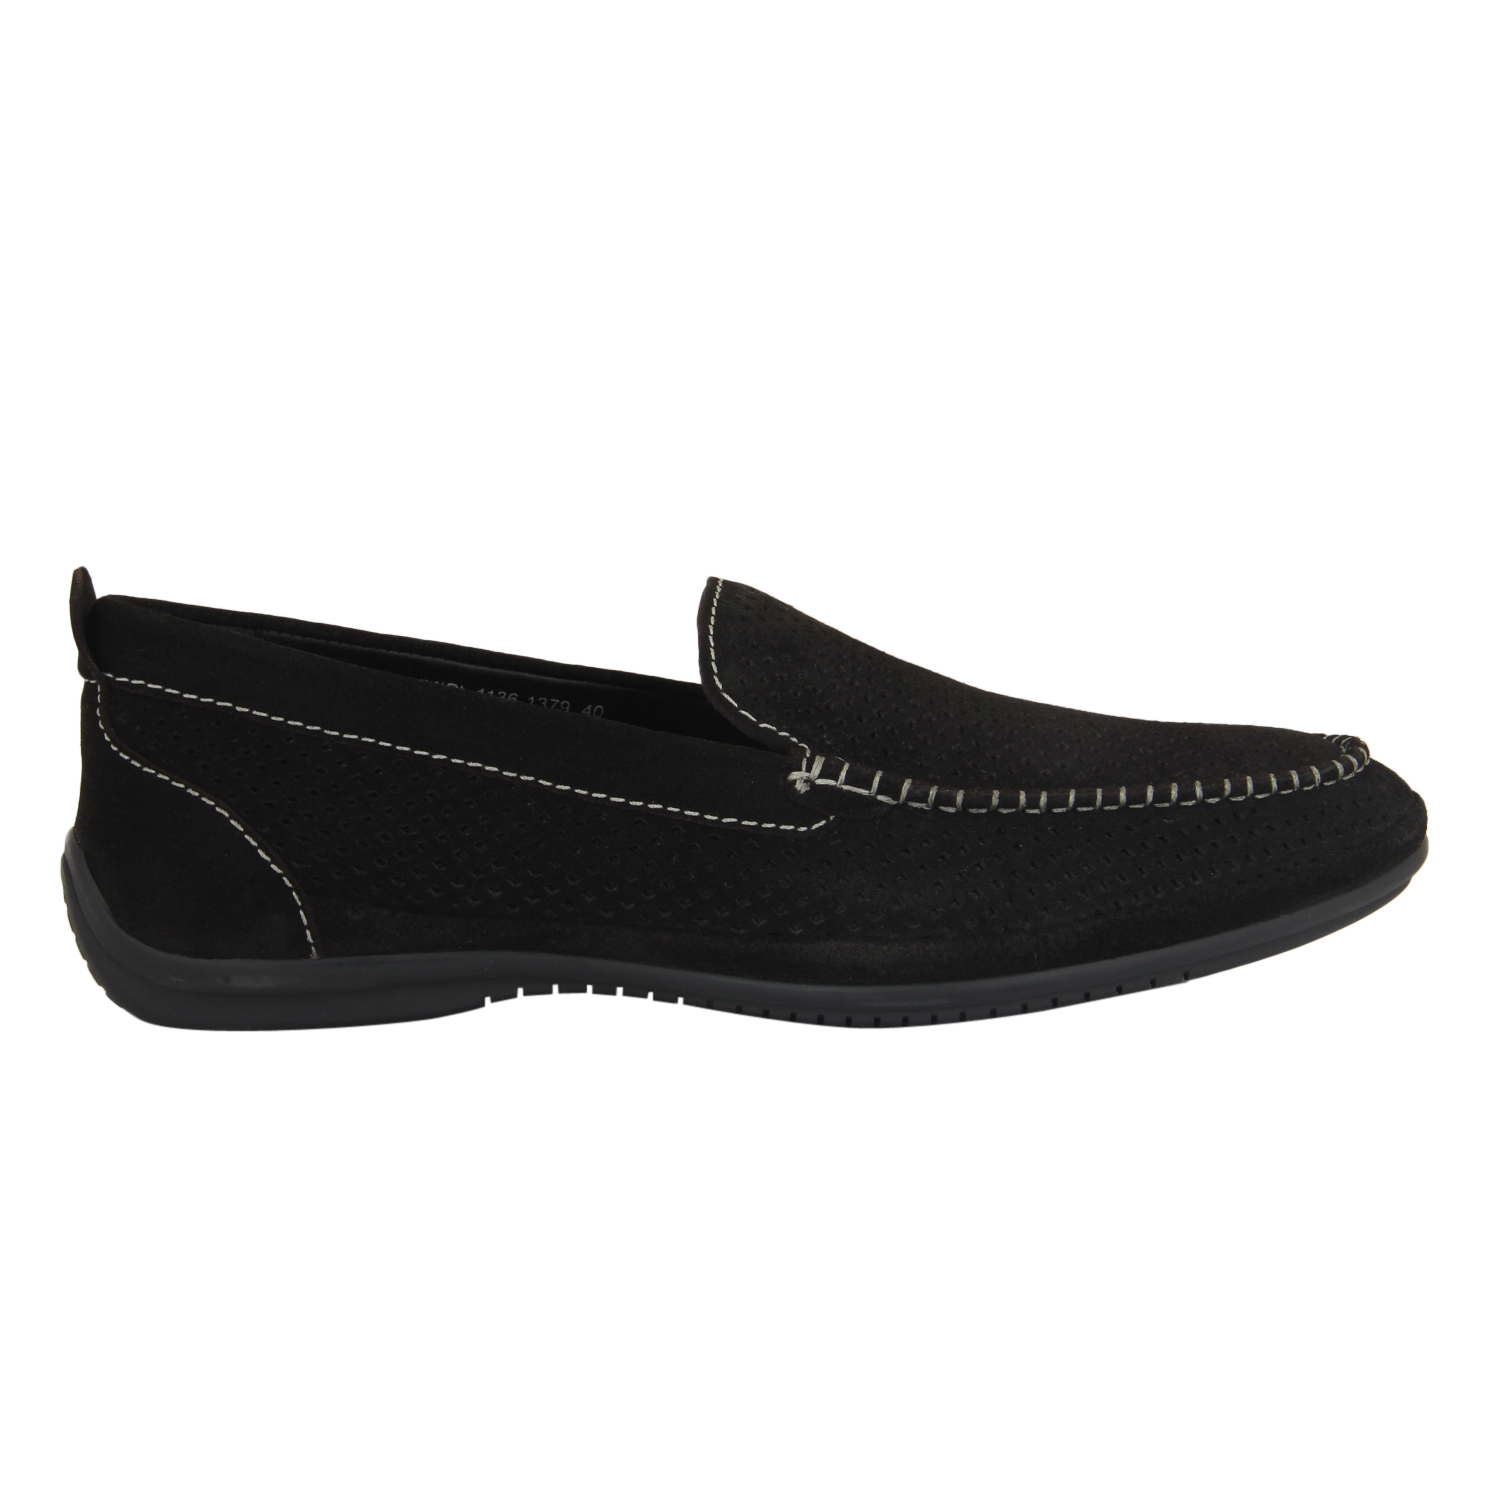 Blue Suede Slip-On Loafer Shoes